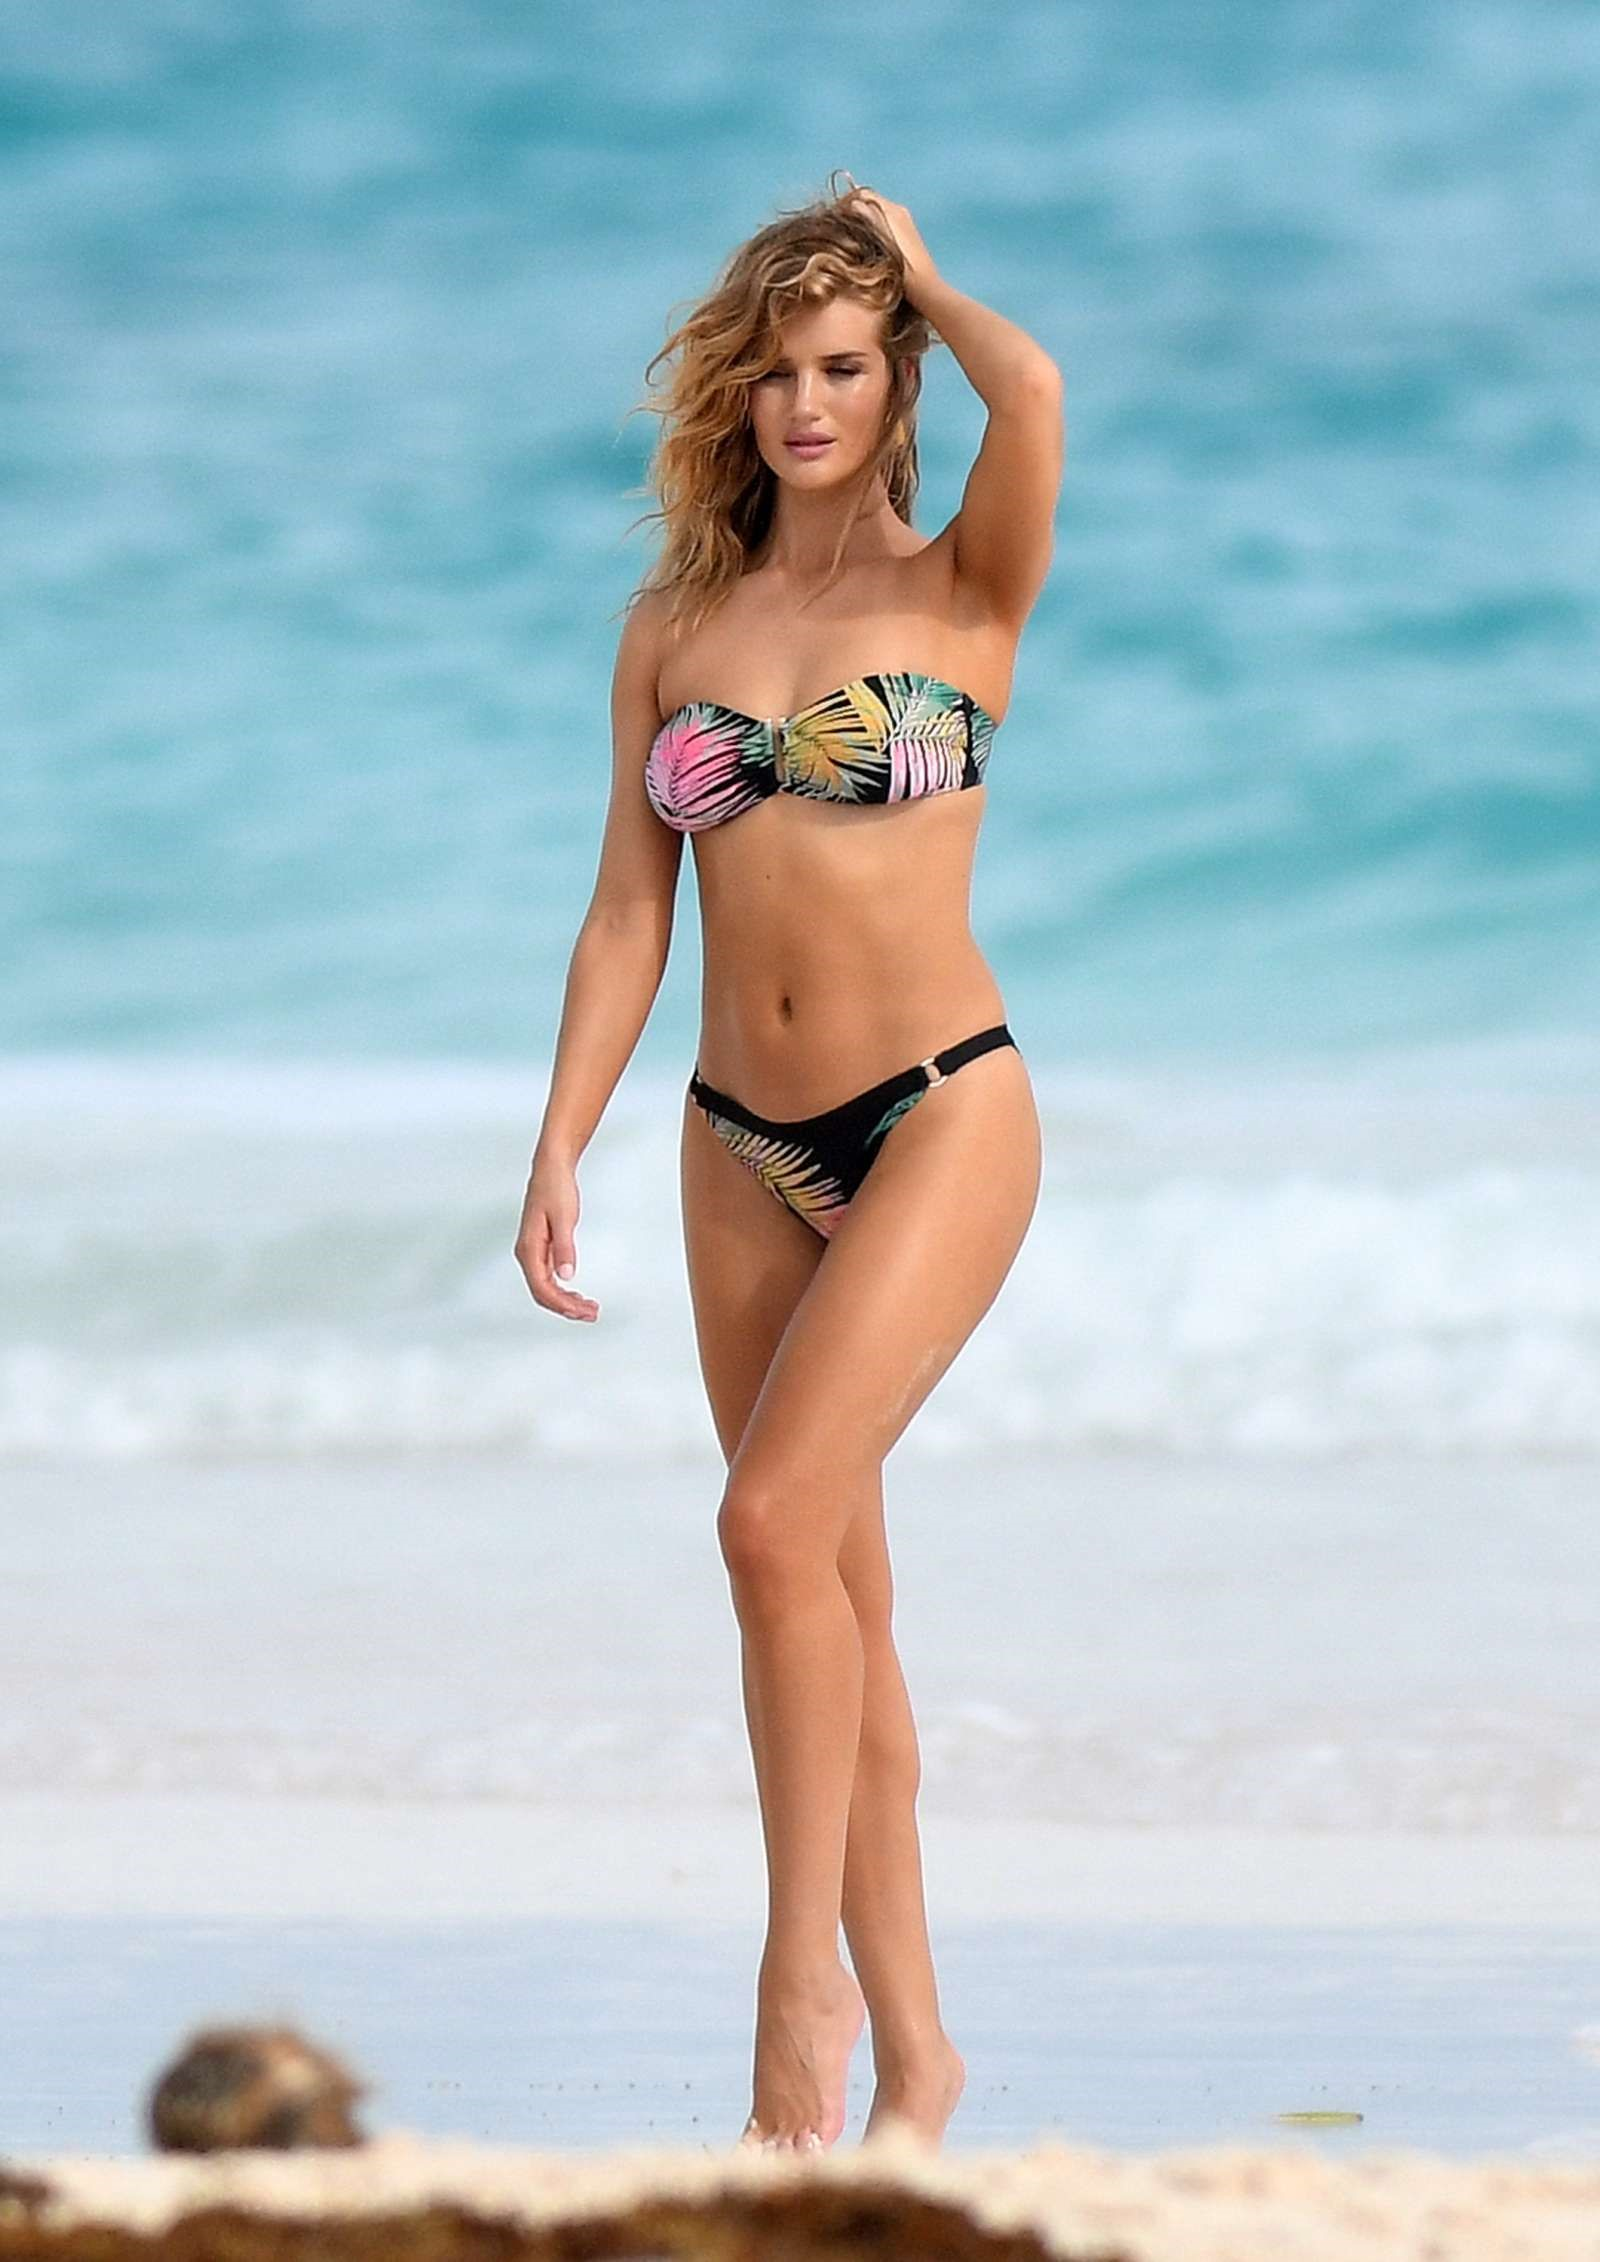 Rosie Huntington Whiteley Bikini Photos